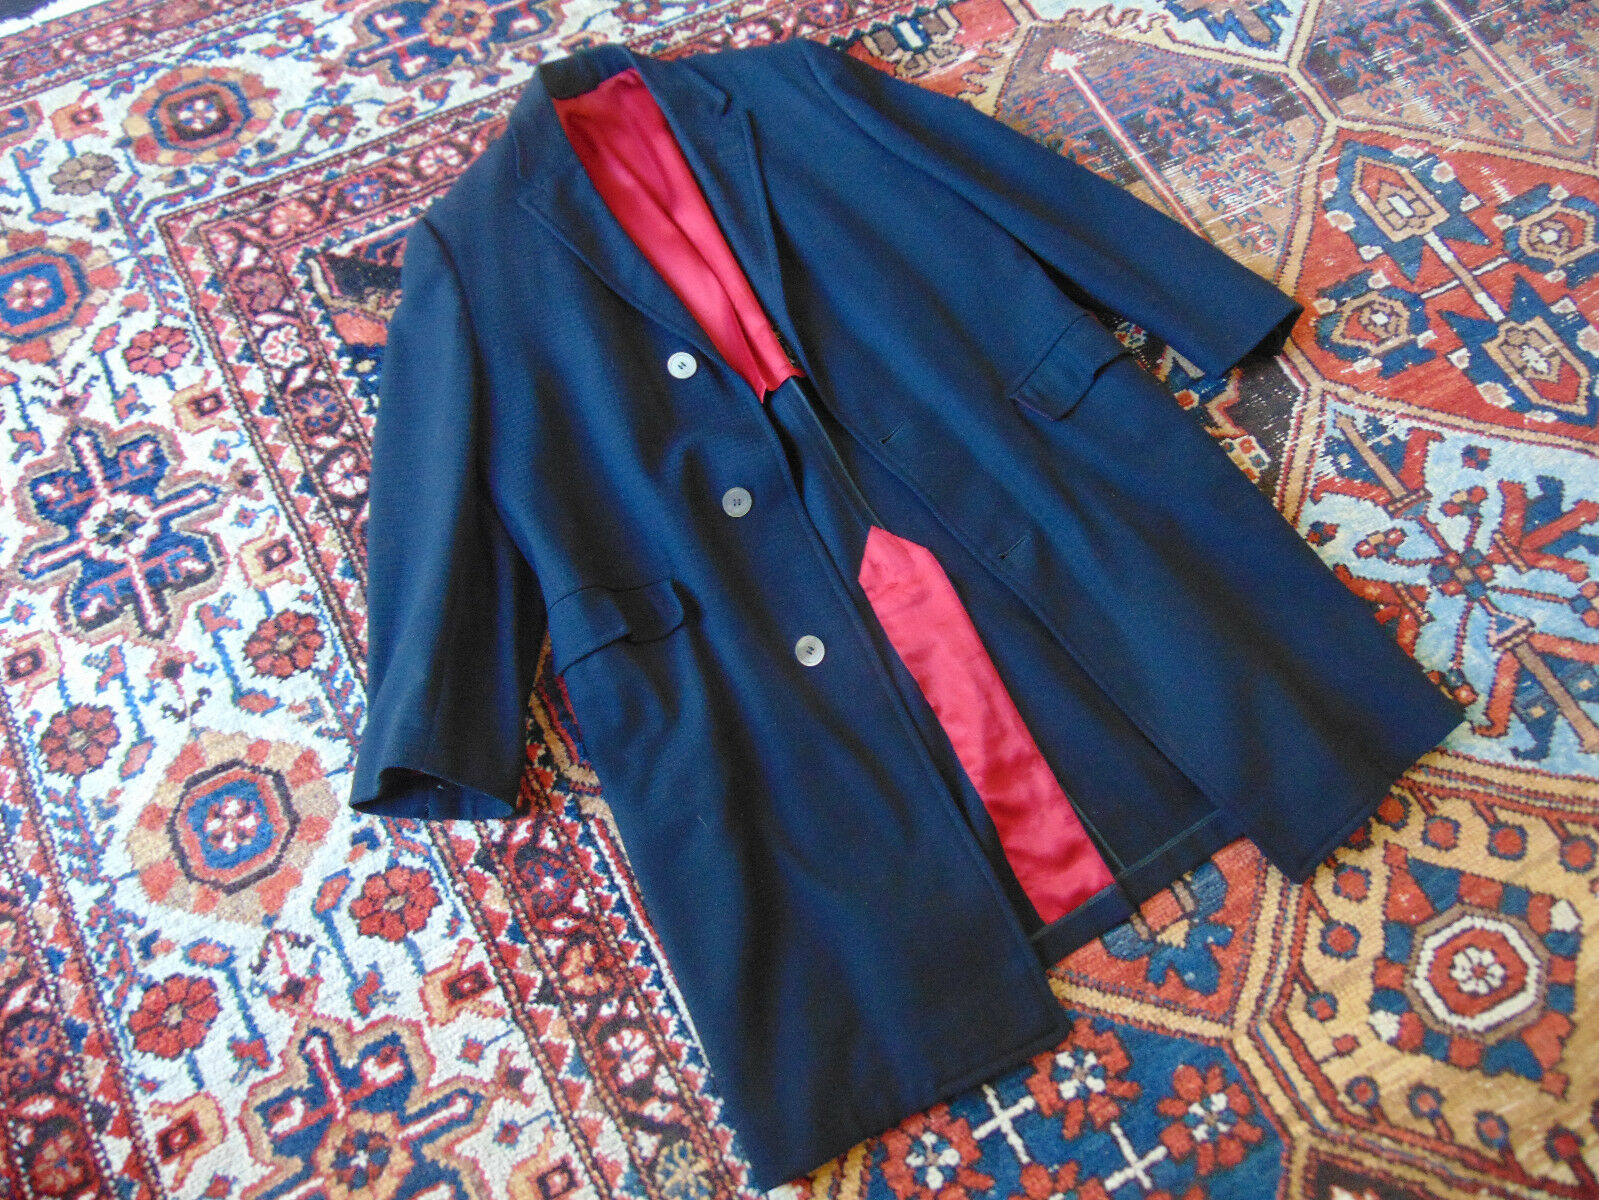 VTG (Dated 1961) Topcoat. Crimson-Lined. Taped Seams. MOP Buttons. US 38R-40R